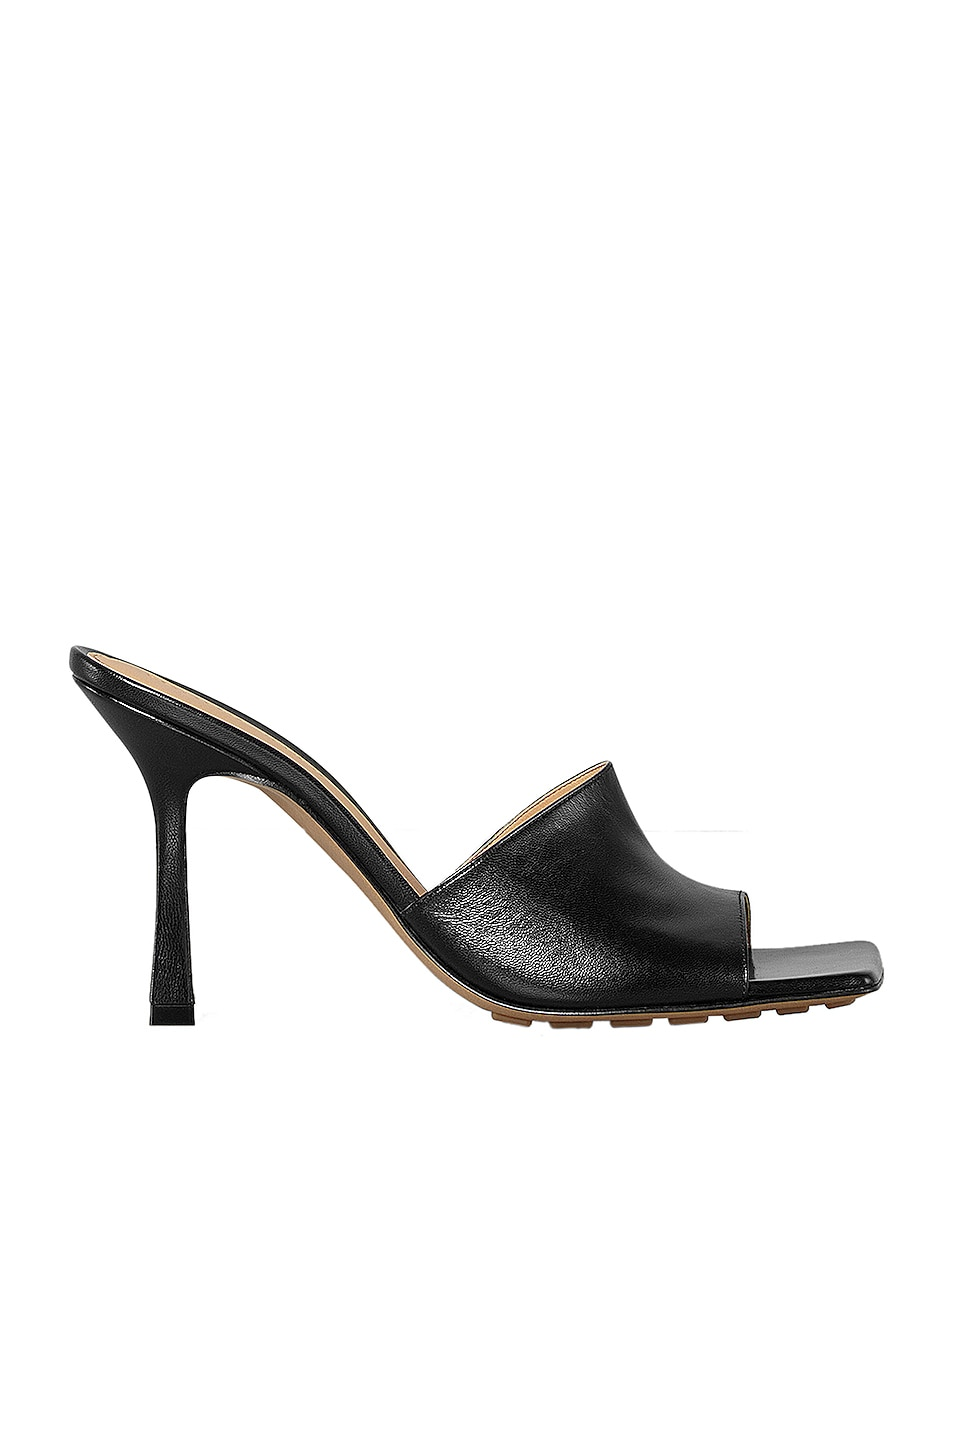 Image 1 of Bottega Veneta Leather Mules in Black